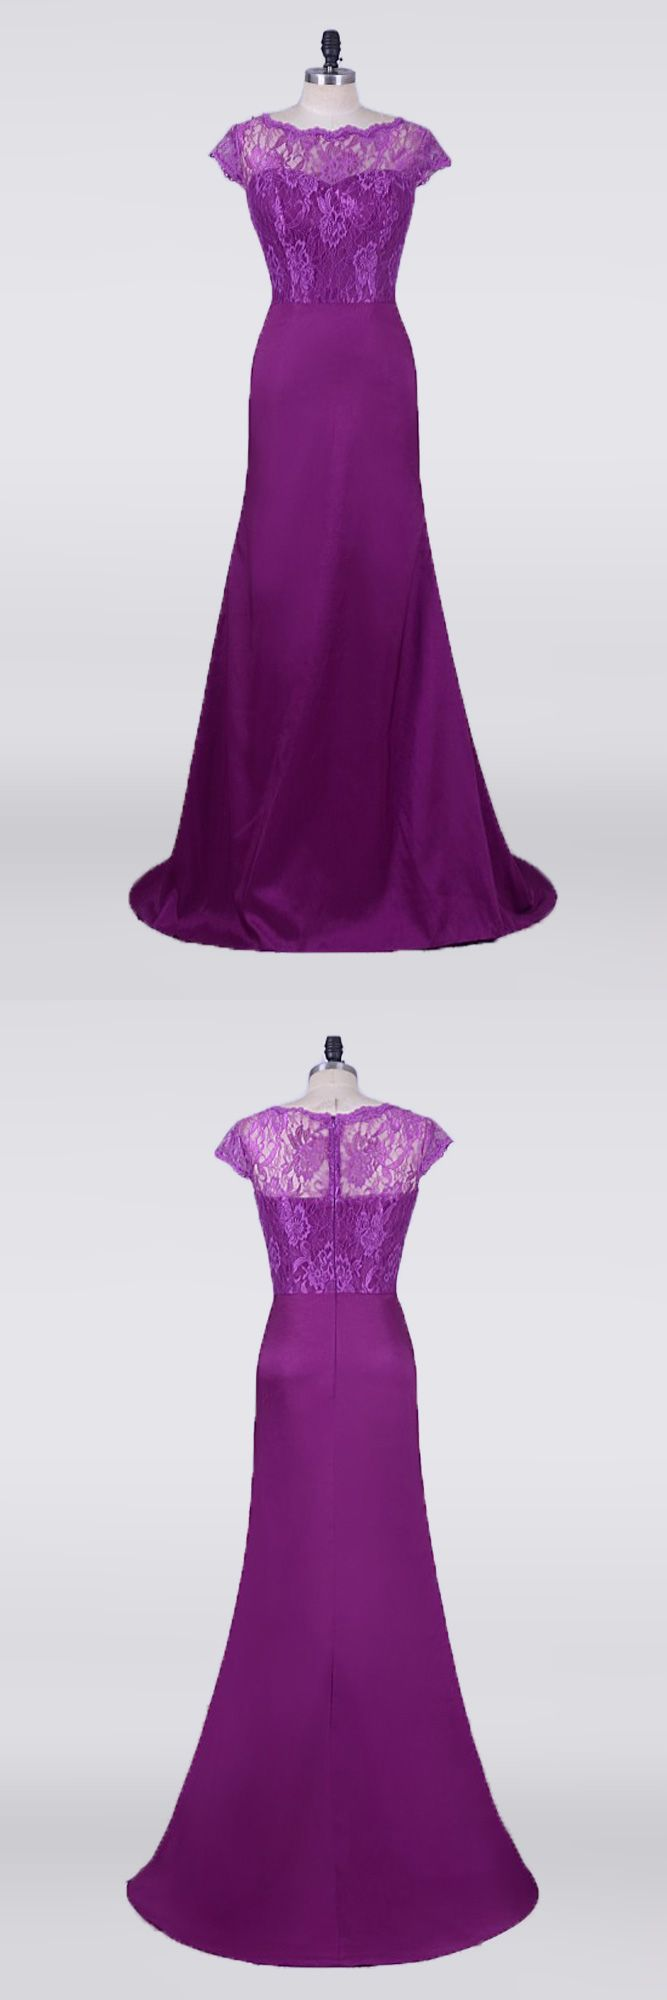 Only $148.99, Mother of the Bride Dresses Purple Petite Mermaid Mother Of The Bride Dresses With Modest Lace Cap Sleeves #E7952 at #GemGrace. View more special Bridal Party Dresses,Mother of the Bride Dresses,Wedding Guest Dresses now? GemGrace is a solution for those who want to buy delicate gowns with affordable prices, a solution for those who have unique ideas about their gowns. 2018 new arrivals, shop now to get $10 off!